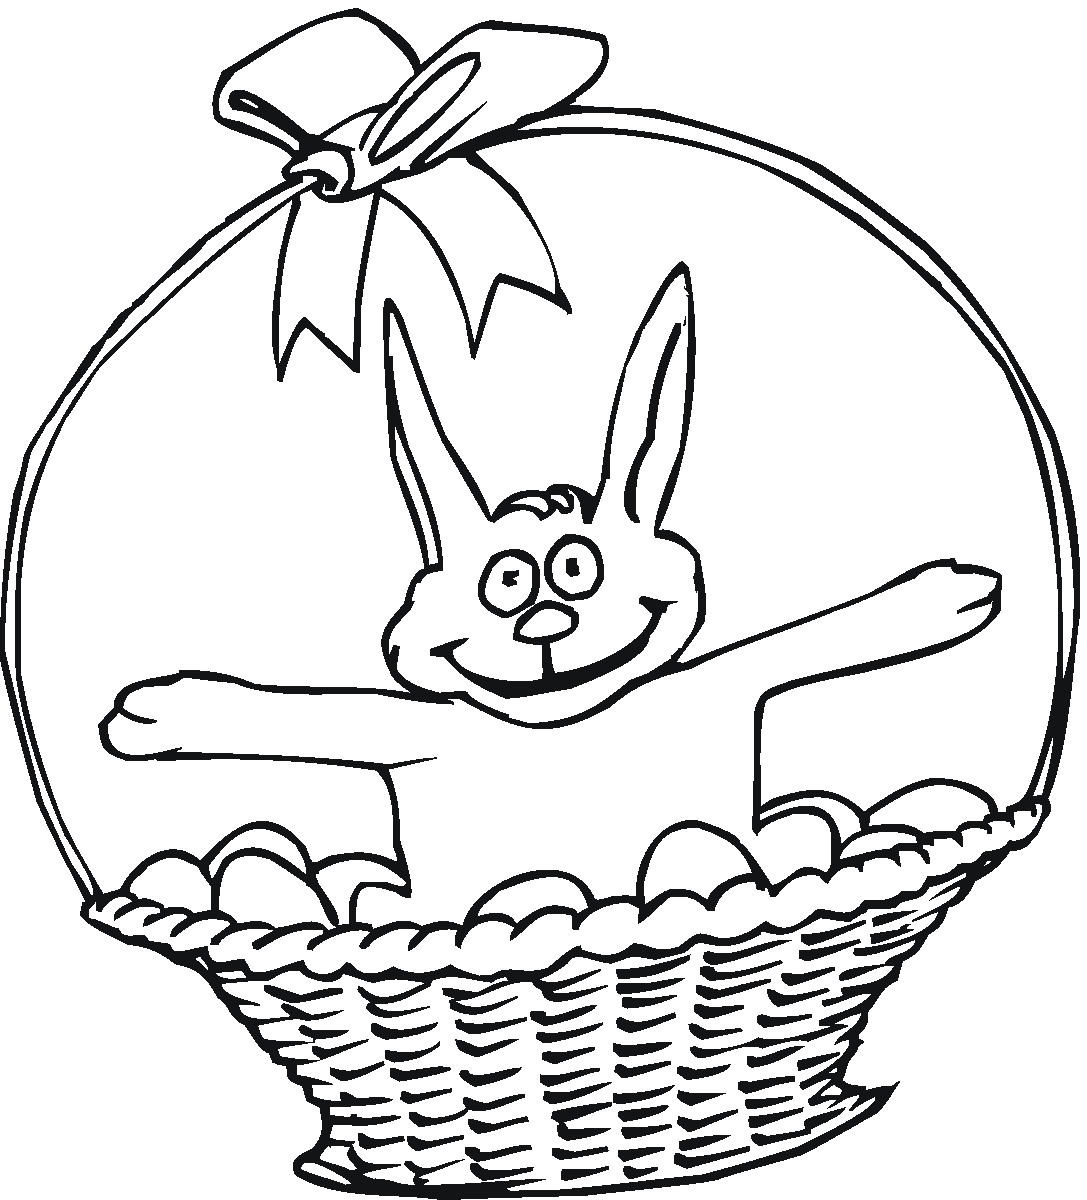 free inca coloring pages - photo#15